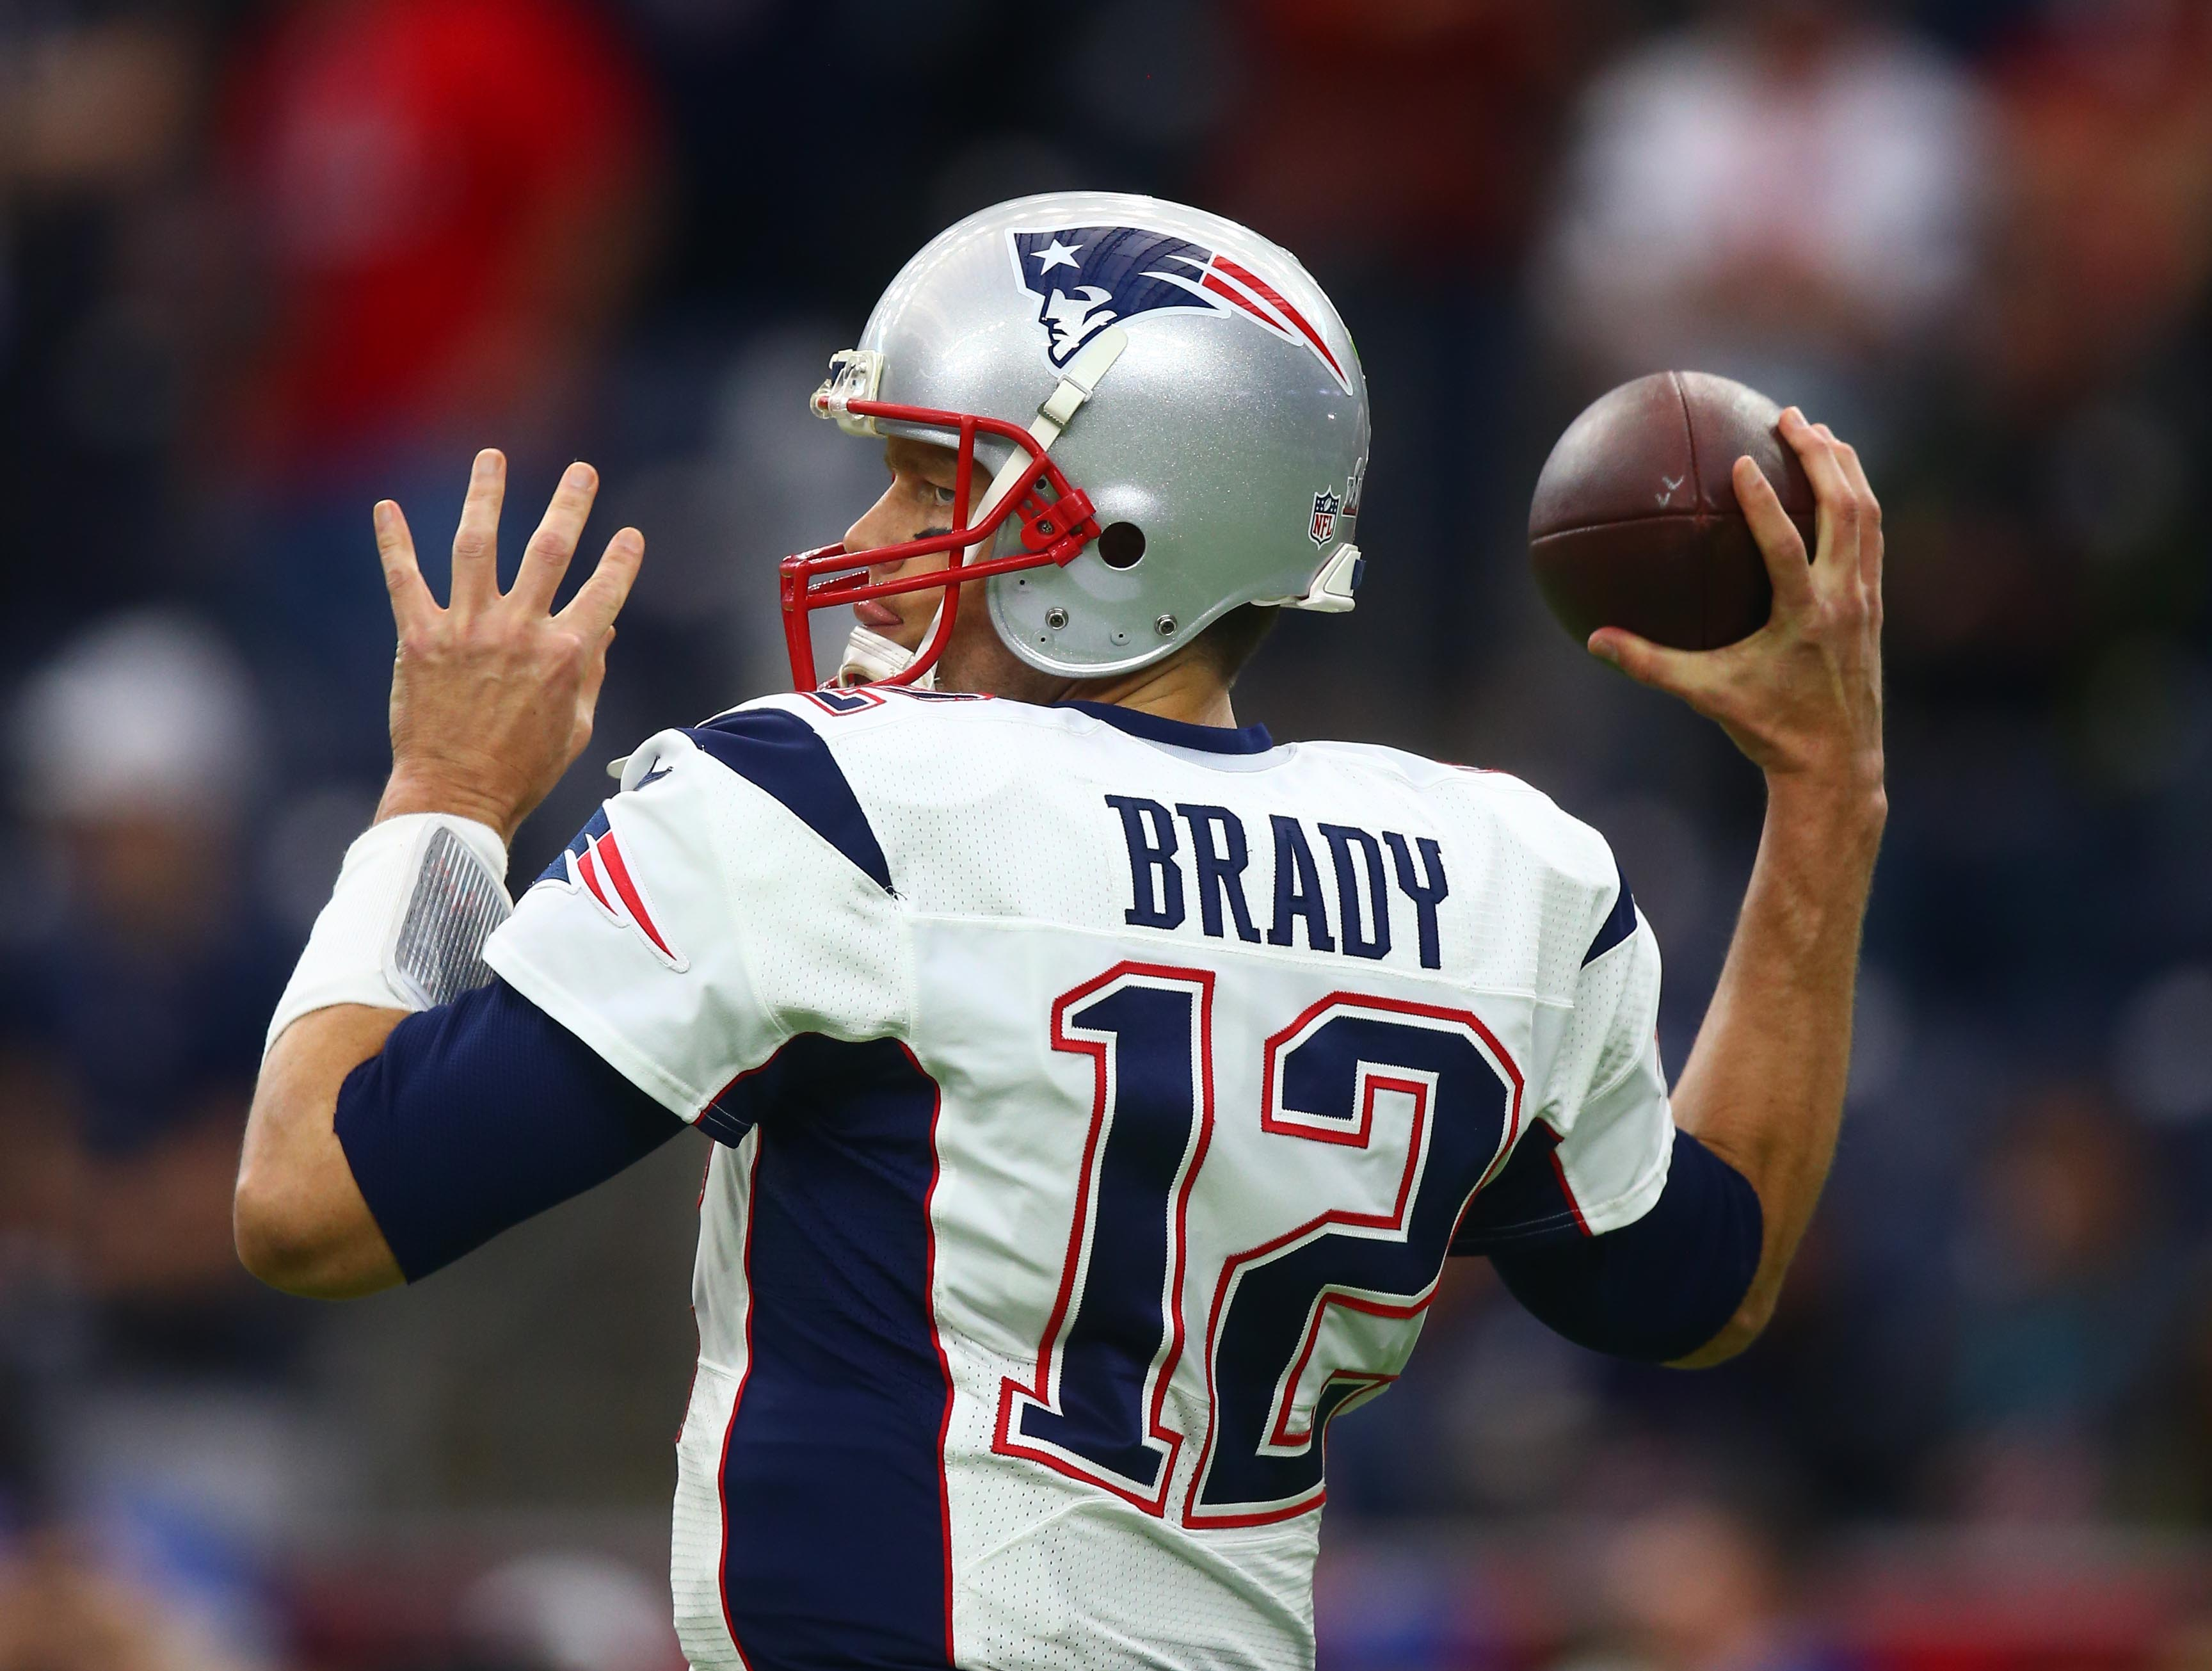 outlet store 00e59 8518c Dear LeBron James, here's 3 reasons Patriots QB Tom Brady is ...